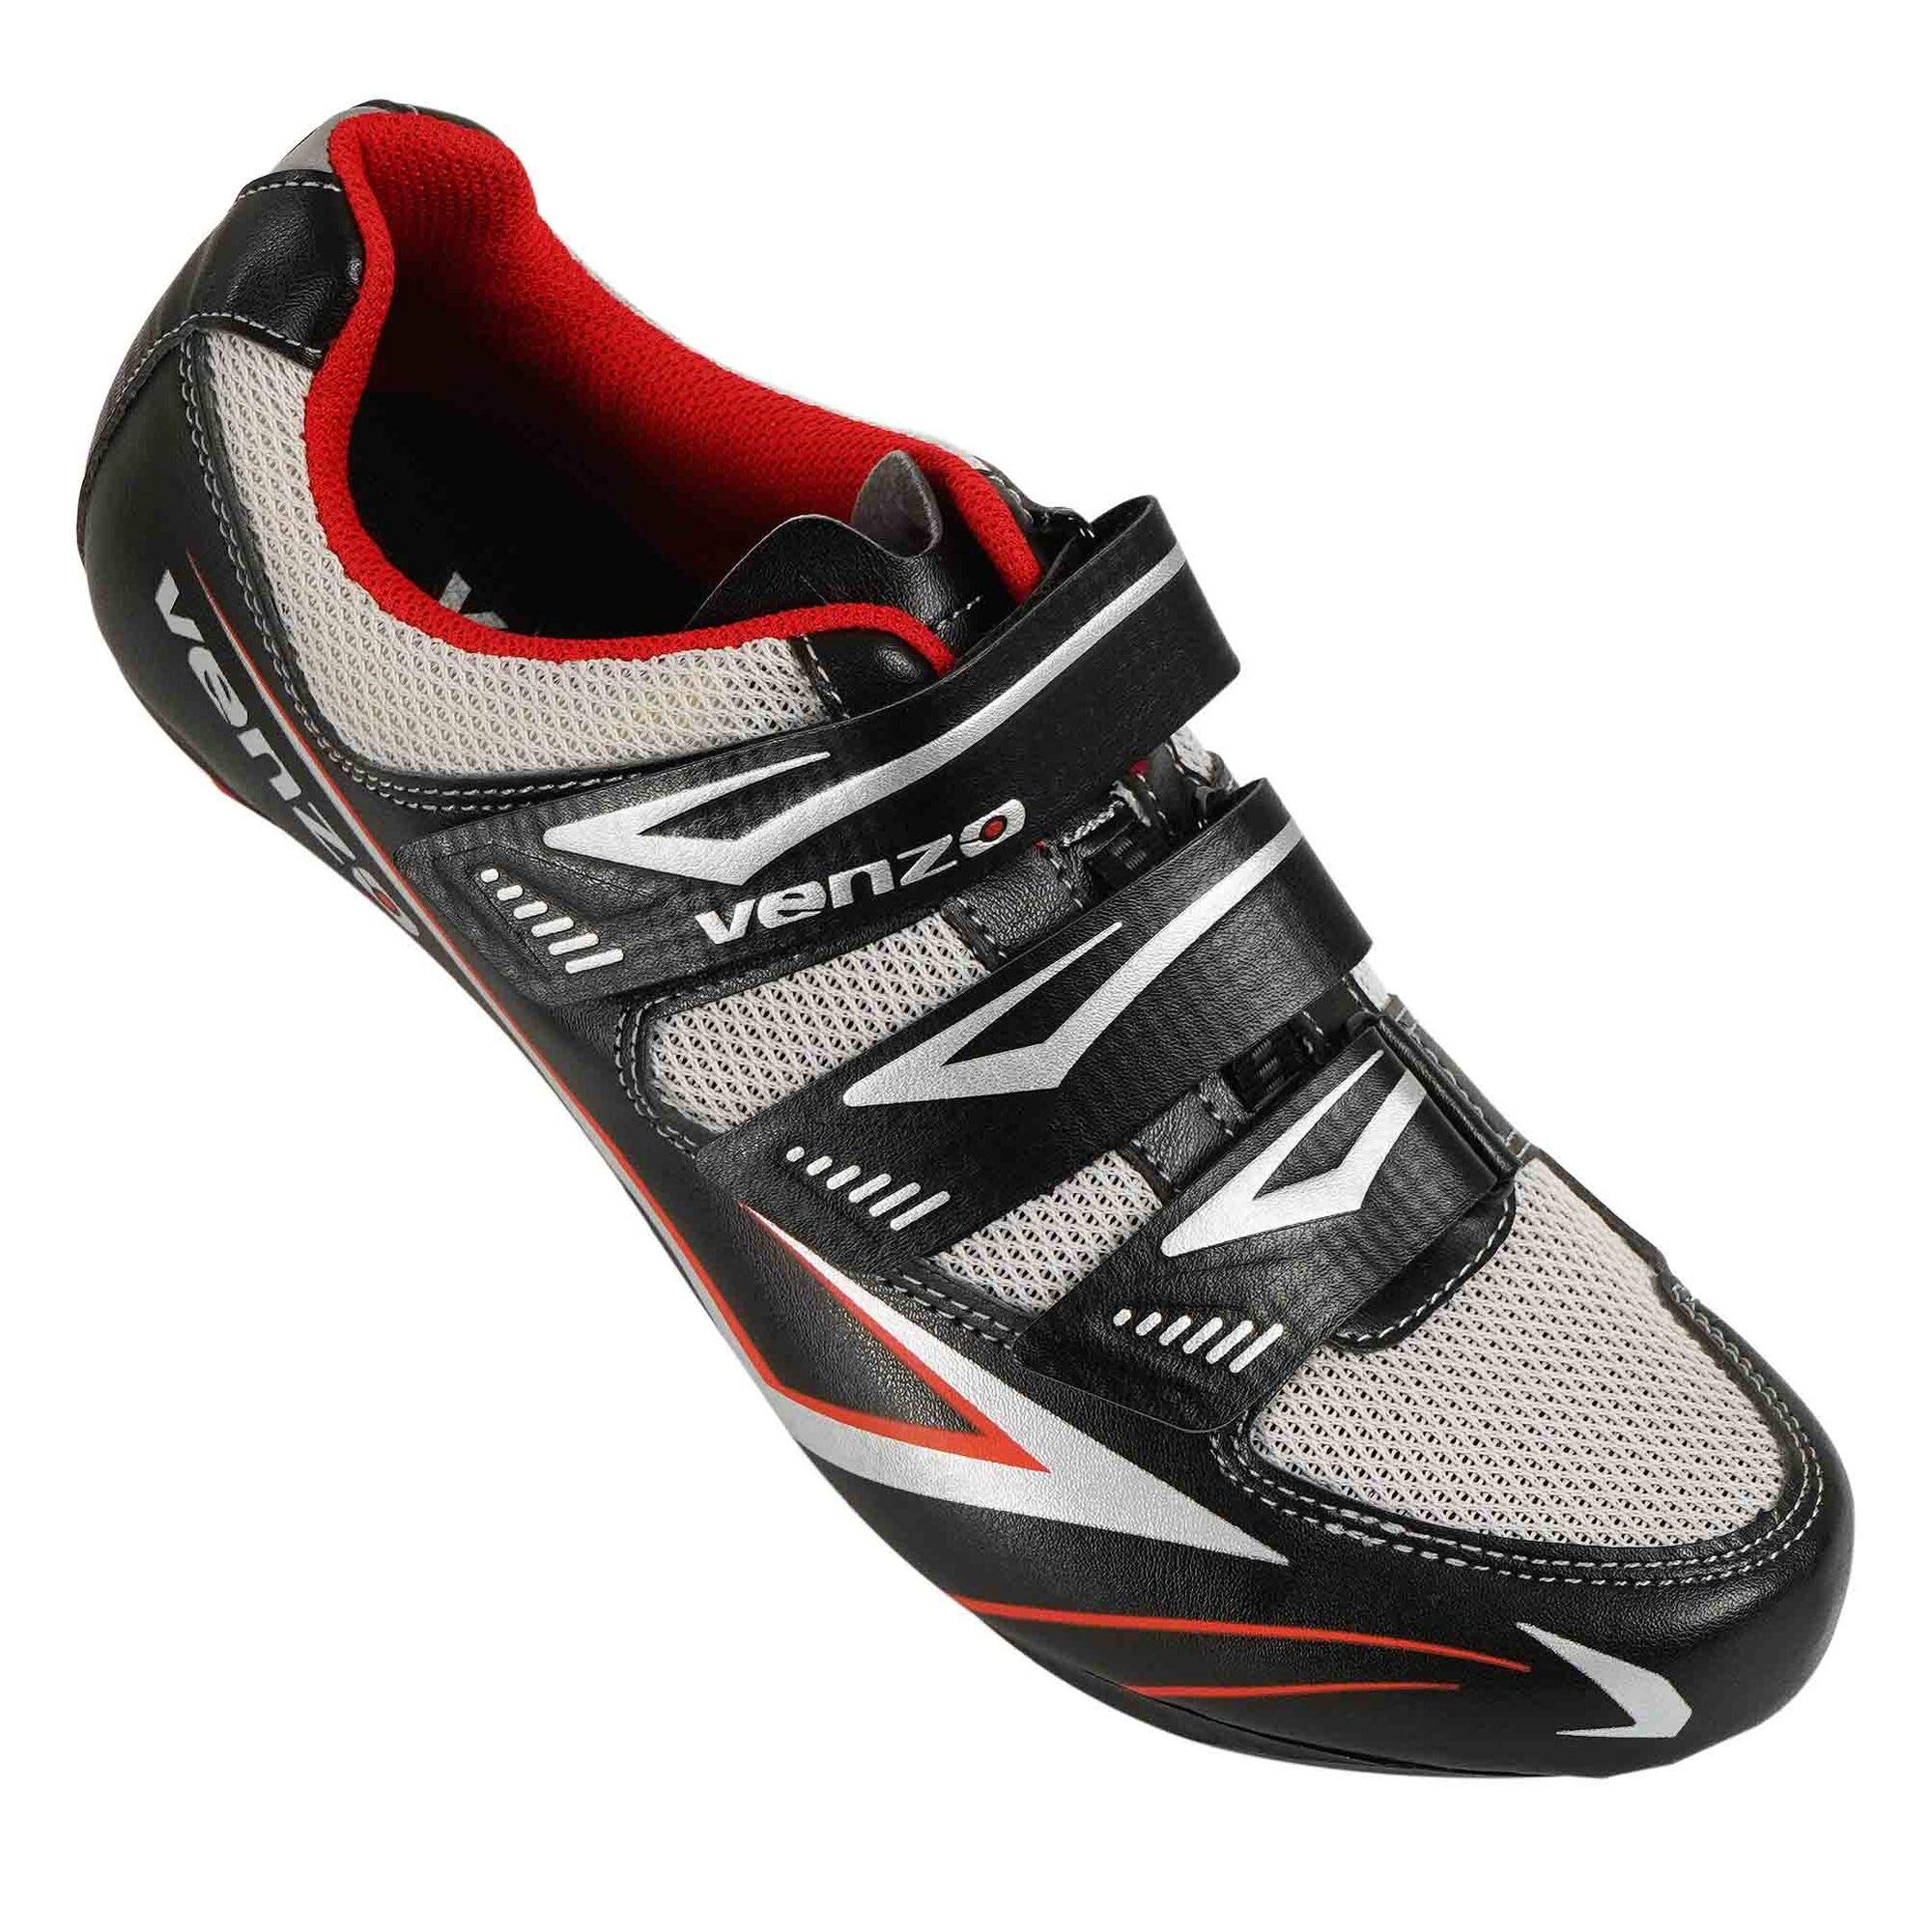 Venzo Road Bike Compatible with Shimano SPD SL Look Cycling Bicycle Shoes 44.5 by Venzo